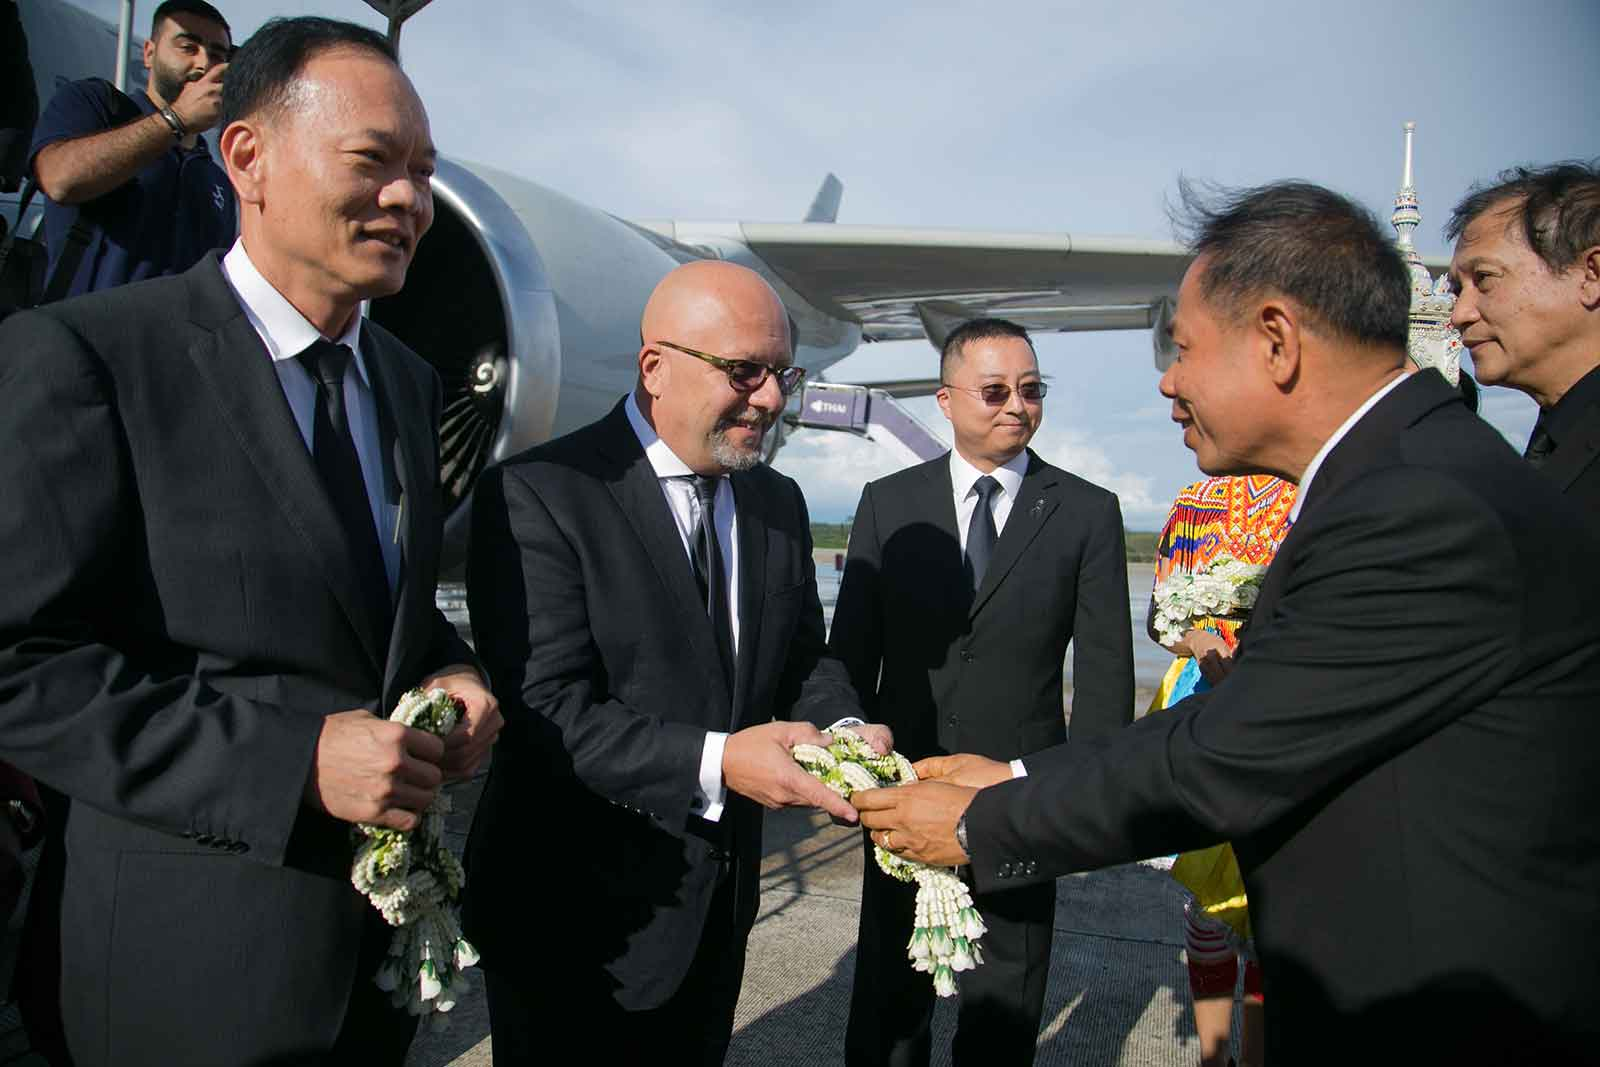 Mr Marwan Koleilat, SVP APAC, receiving a welcome garland from Mr. Nob Kongpun, Vice Governor of Krabi